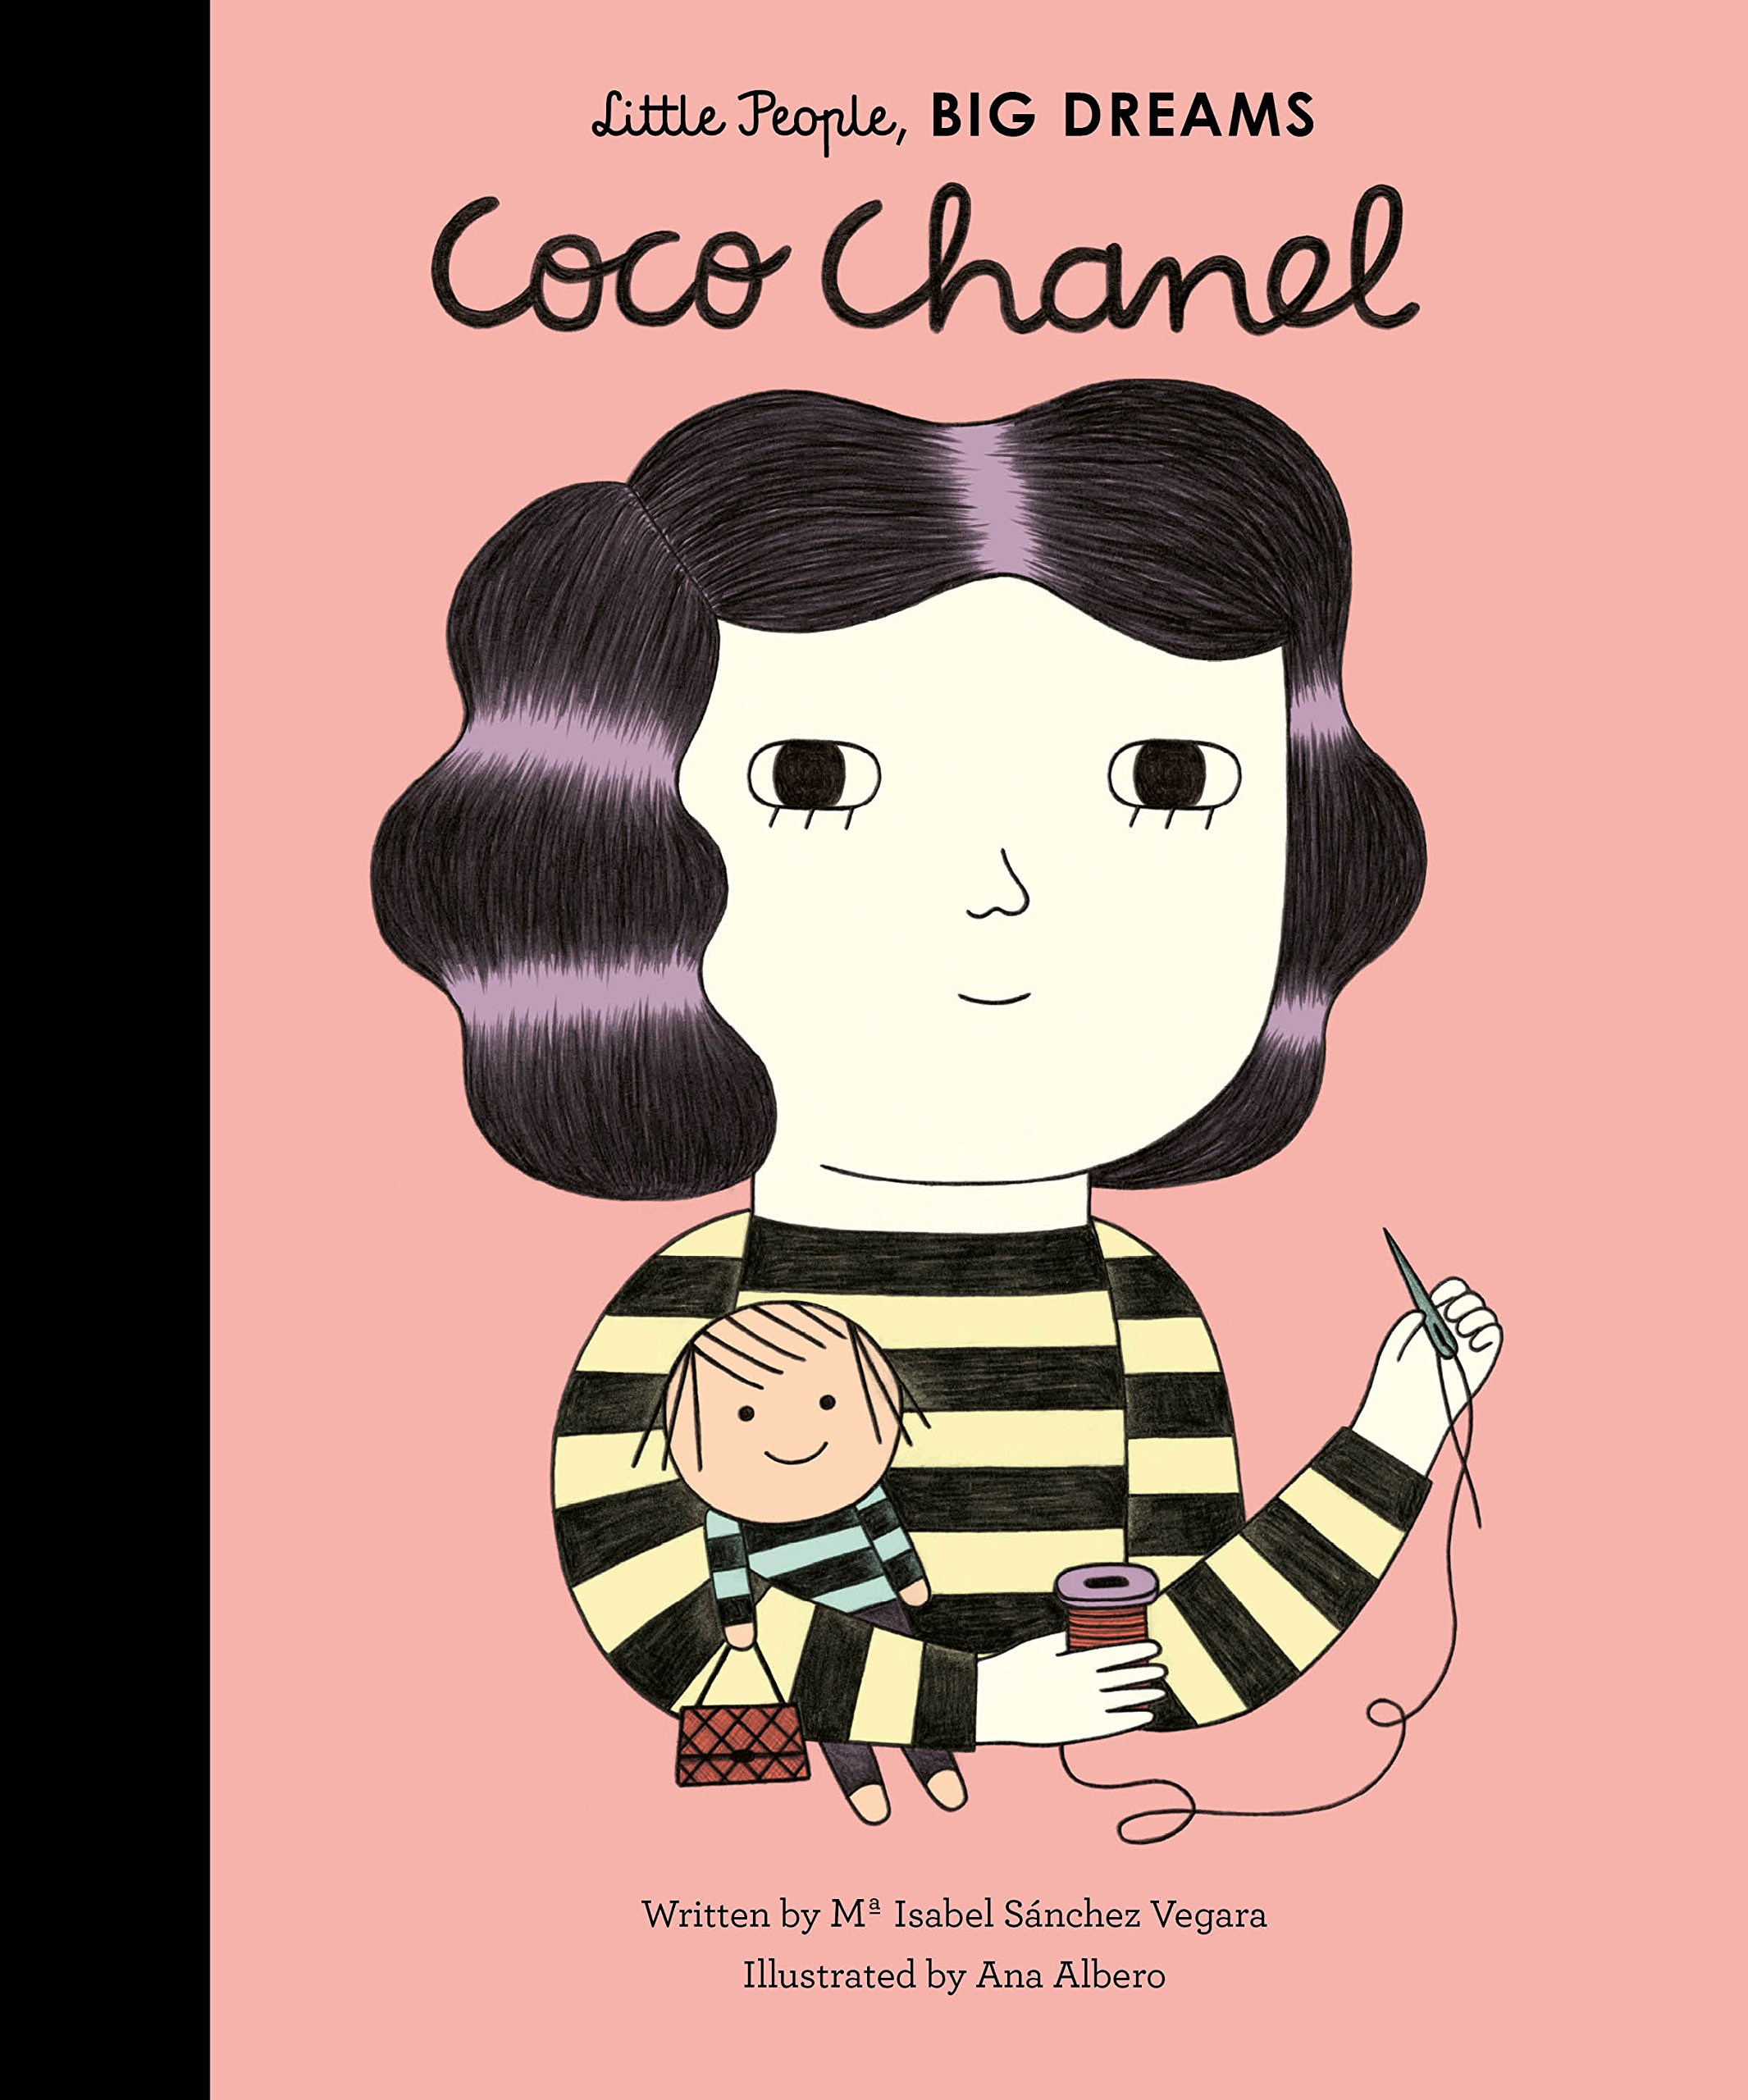 Coco Chanel Little People Big Dreams Amazon Isabel